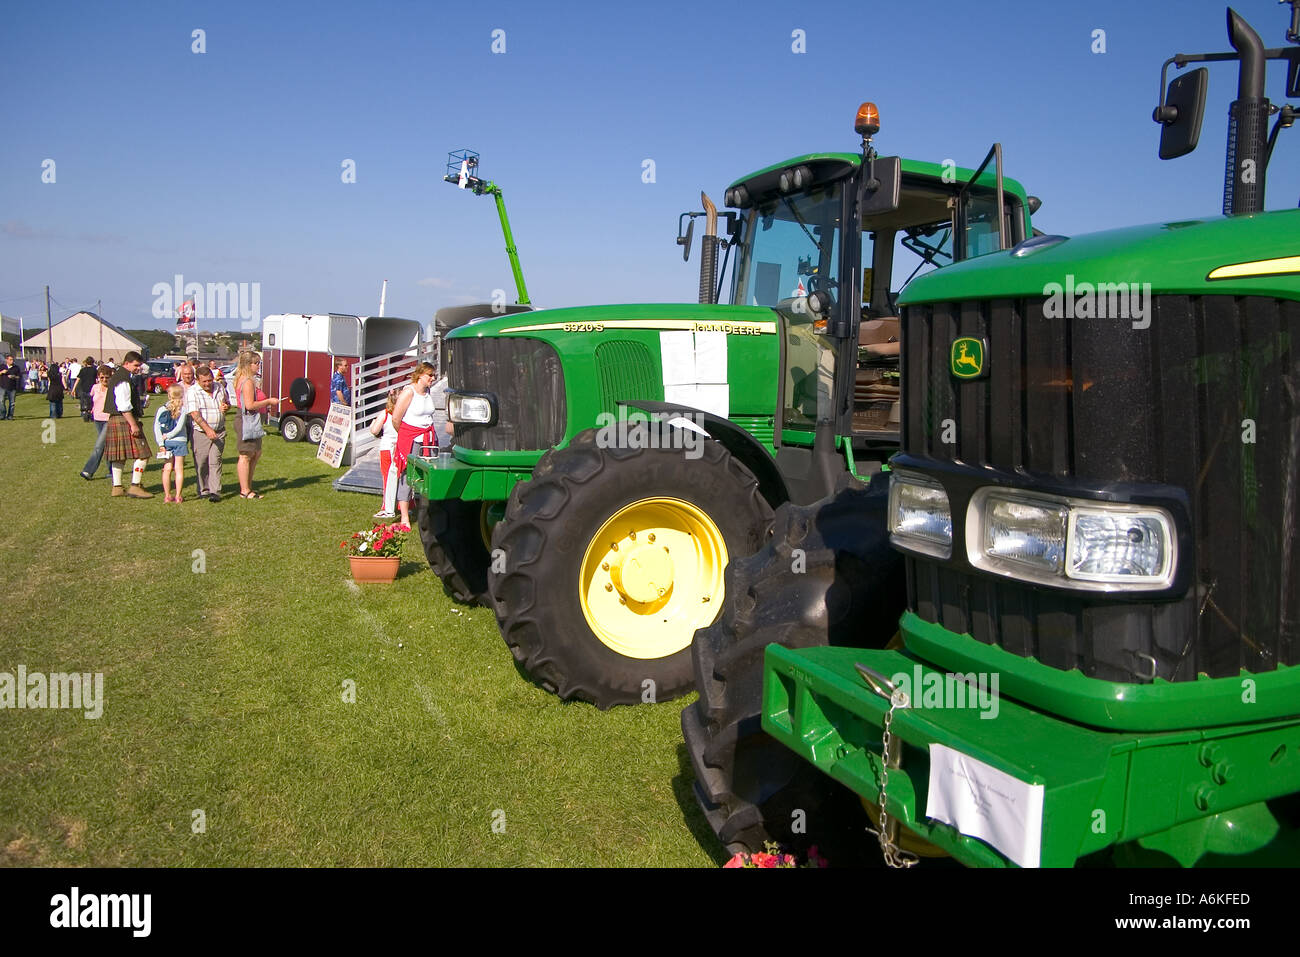 dh County Show KIRKWALL ORKNEY John Deere tractors machines at show display farm sell farming equipment Stock Photo